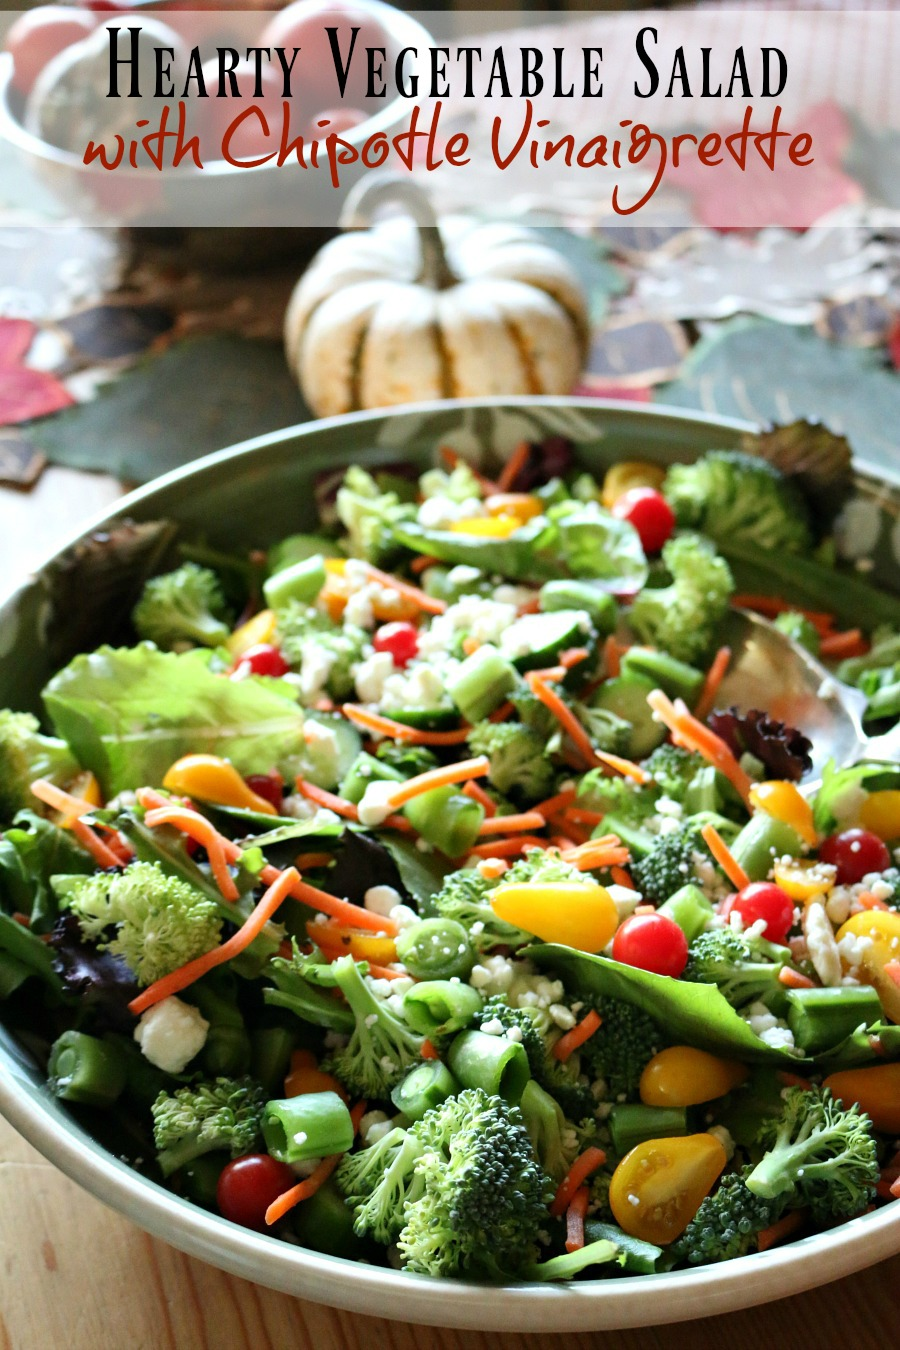 You can't go wrong with this amazing salad loaded with lots of vegetables and topped with this amazing chipotle vinaigrette.